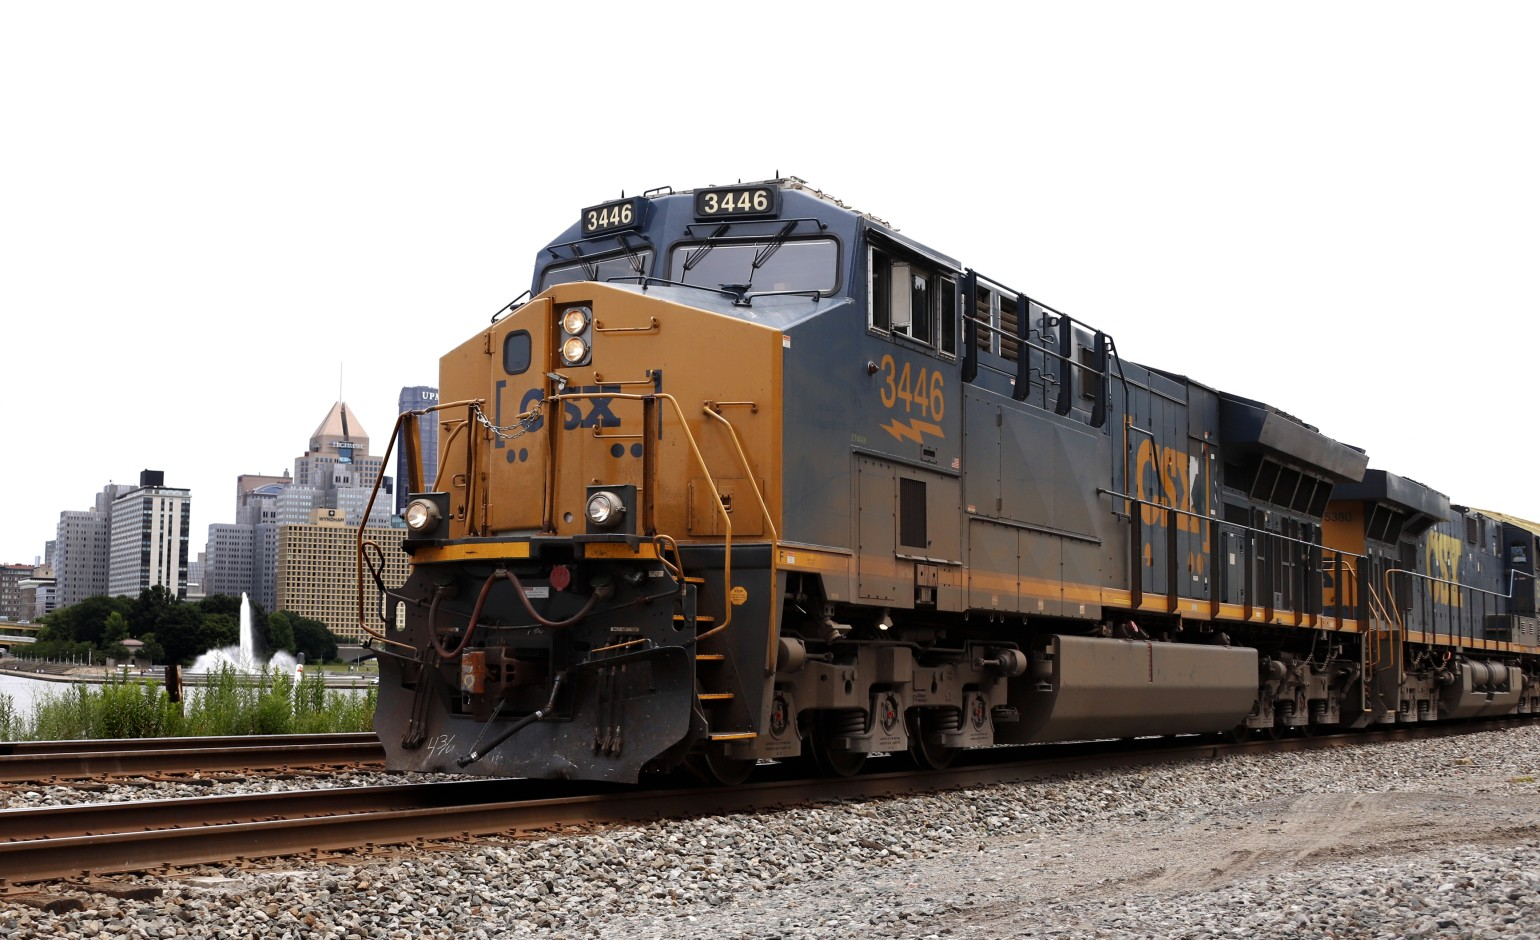 Regulators consider